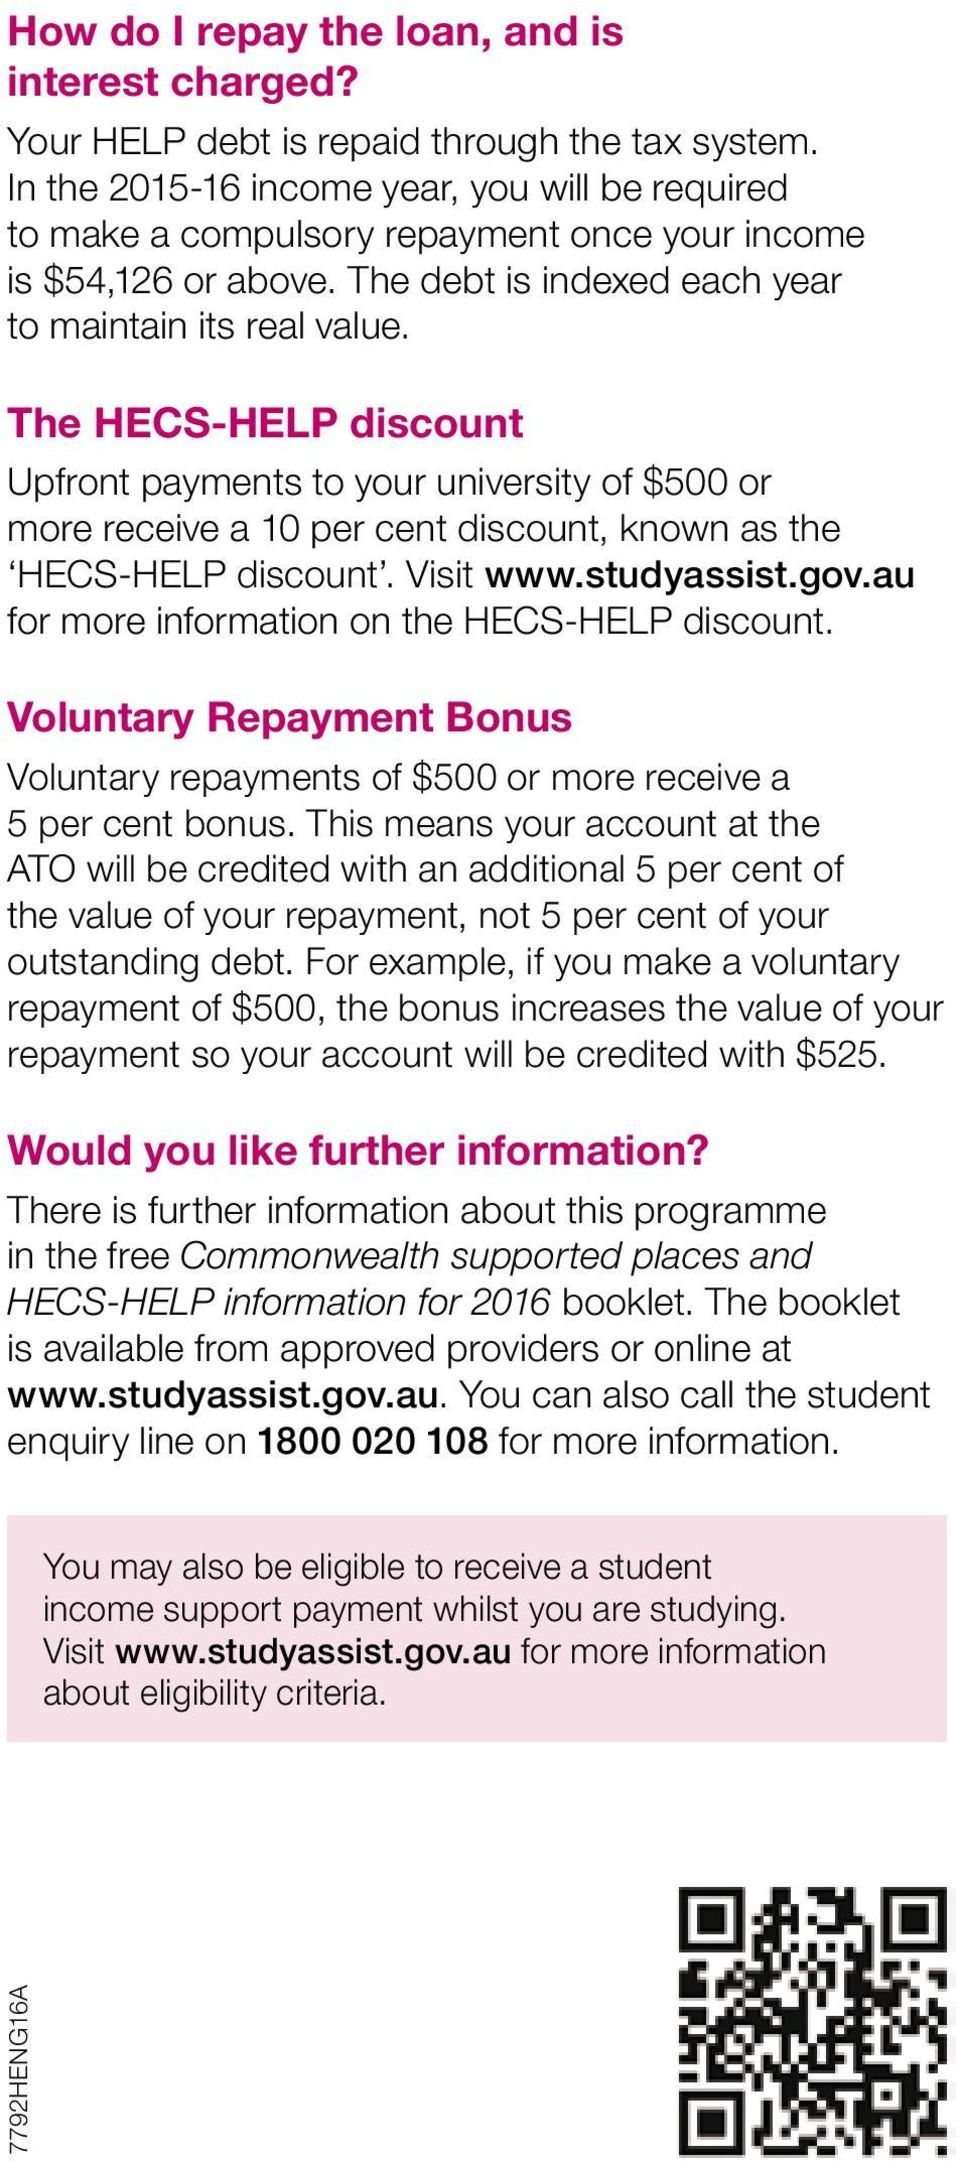 The HECS-HELP discount Upfront payments to your university of $500 or more receive a 10 per cent discount, known as the HECS-HELP discount. Visit www.studyassist.gov.